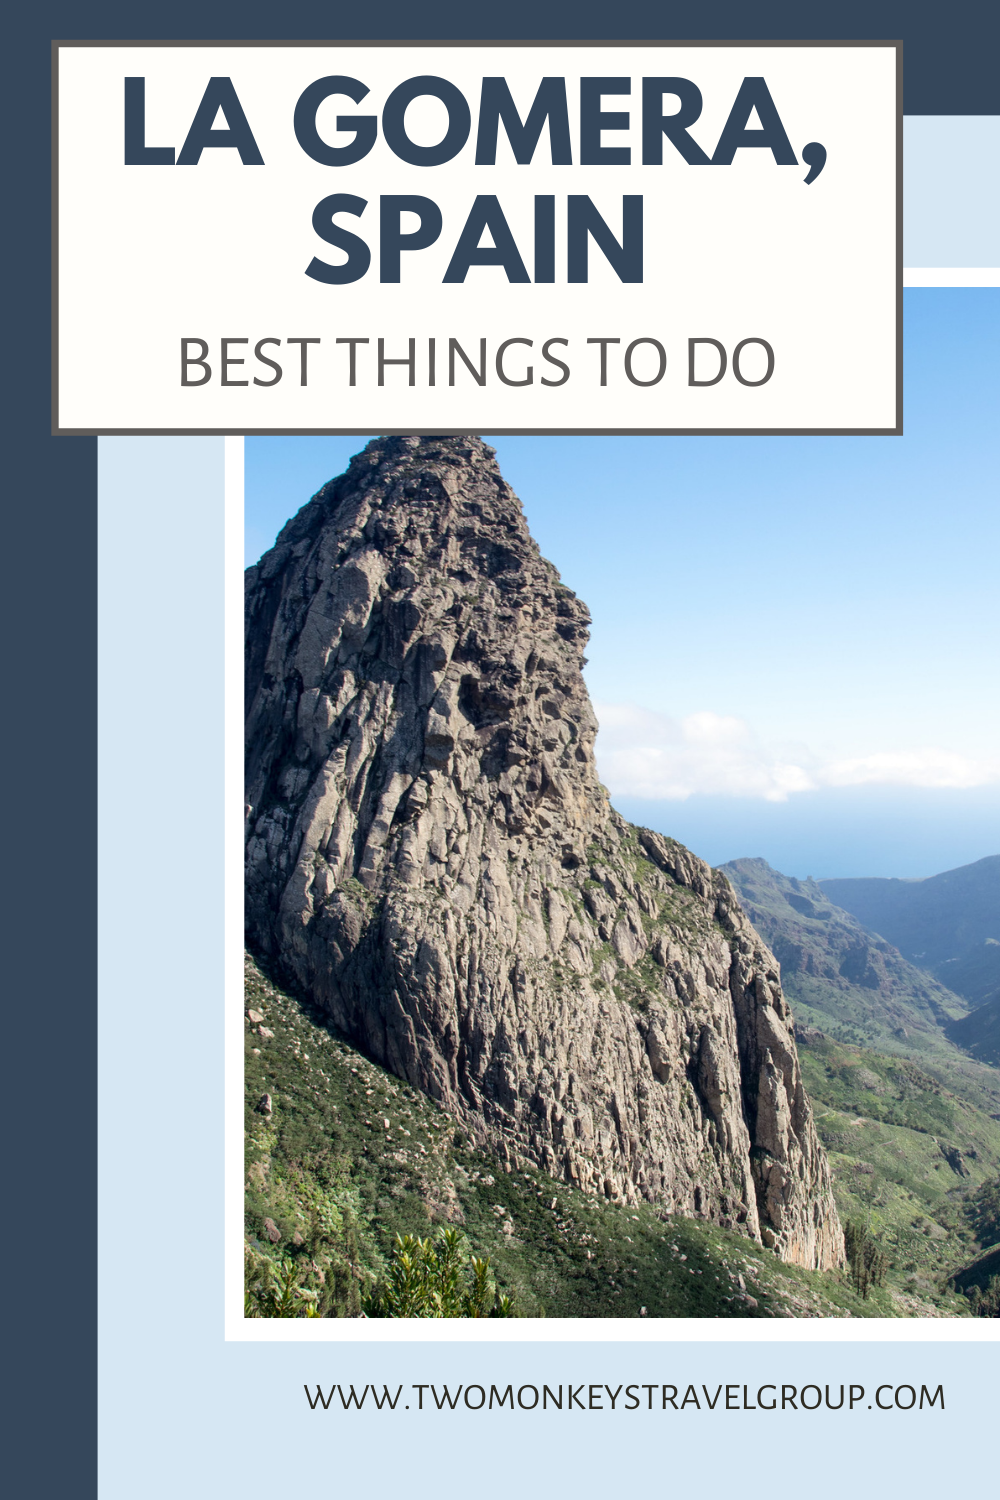 10 Best Things to do in La Gomera, Spain [with Suggested Tours]